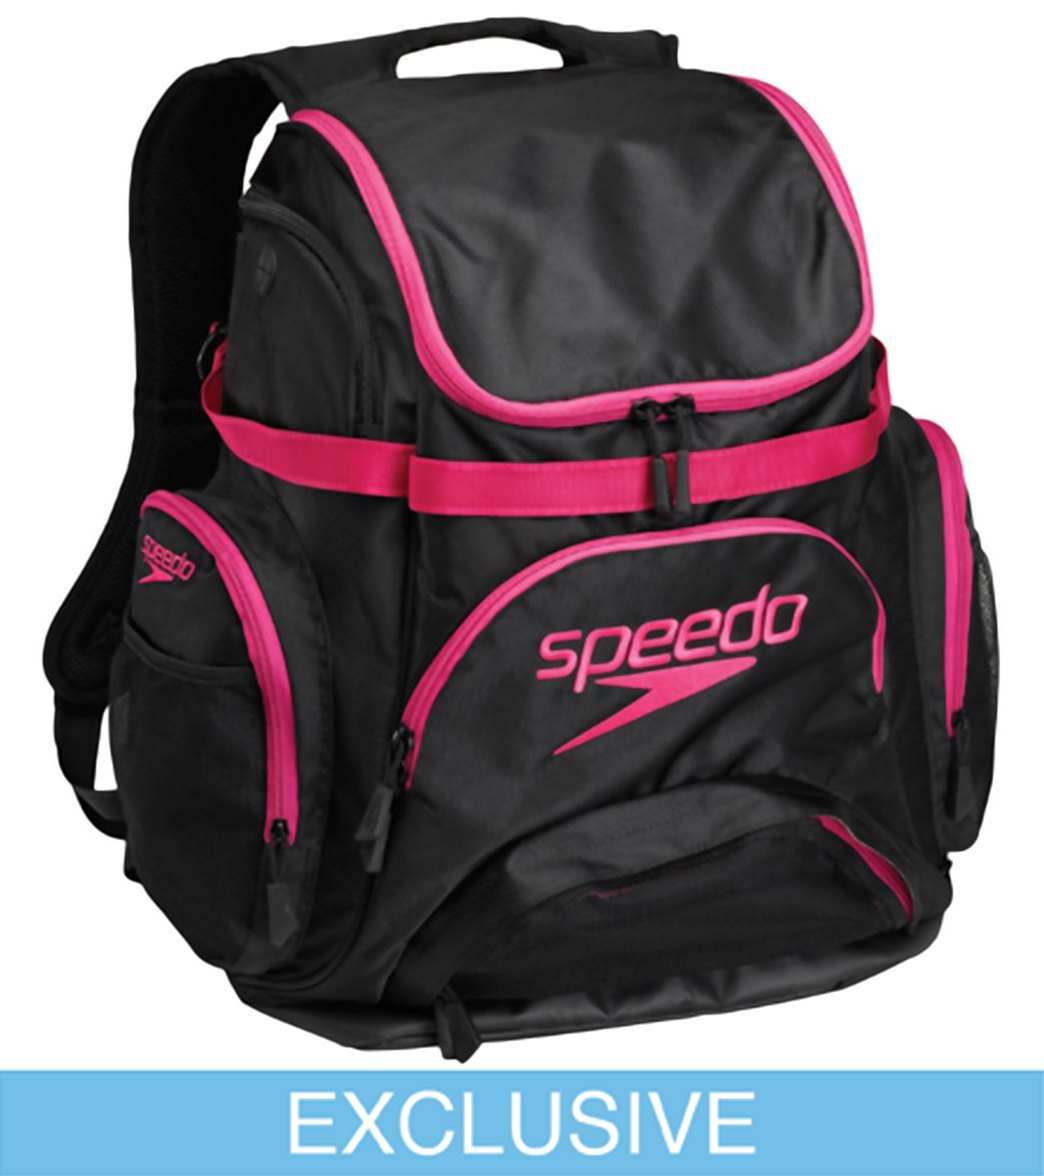 6ae9f10056e5 Speedo Large Pro Backpack at SwimOutlet.com - Free Shipping